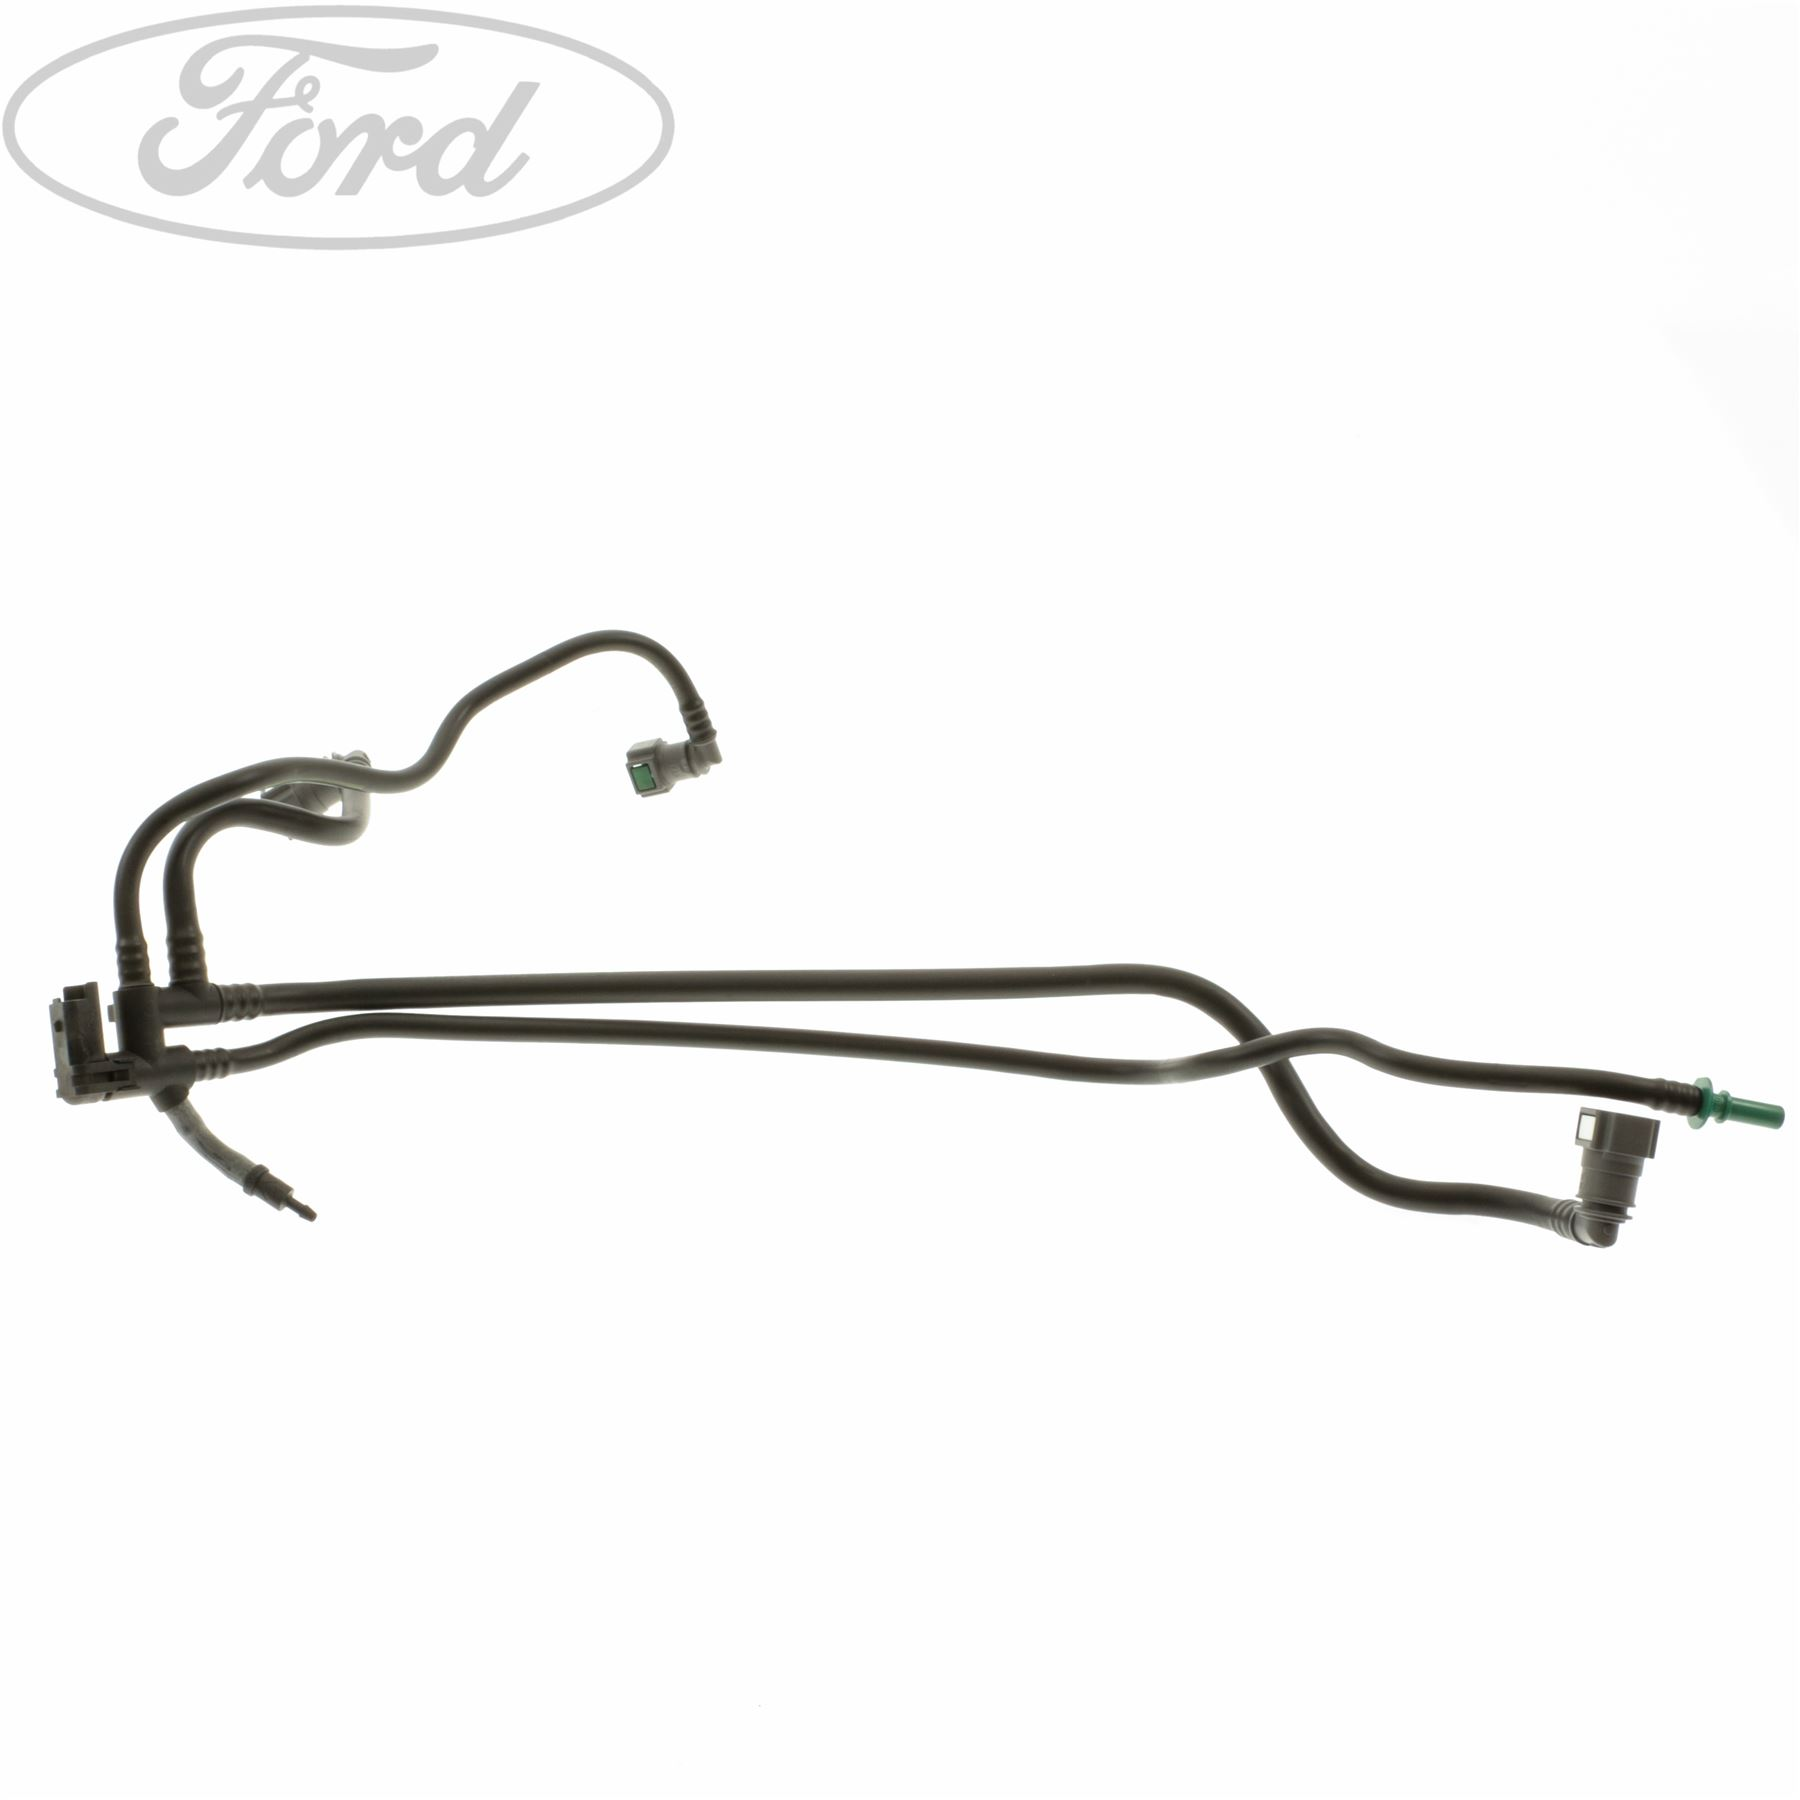 Genuine Ford Fiesta Mk7 Fuel Pipe Hose Harness Less Hand